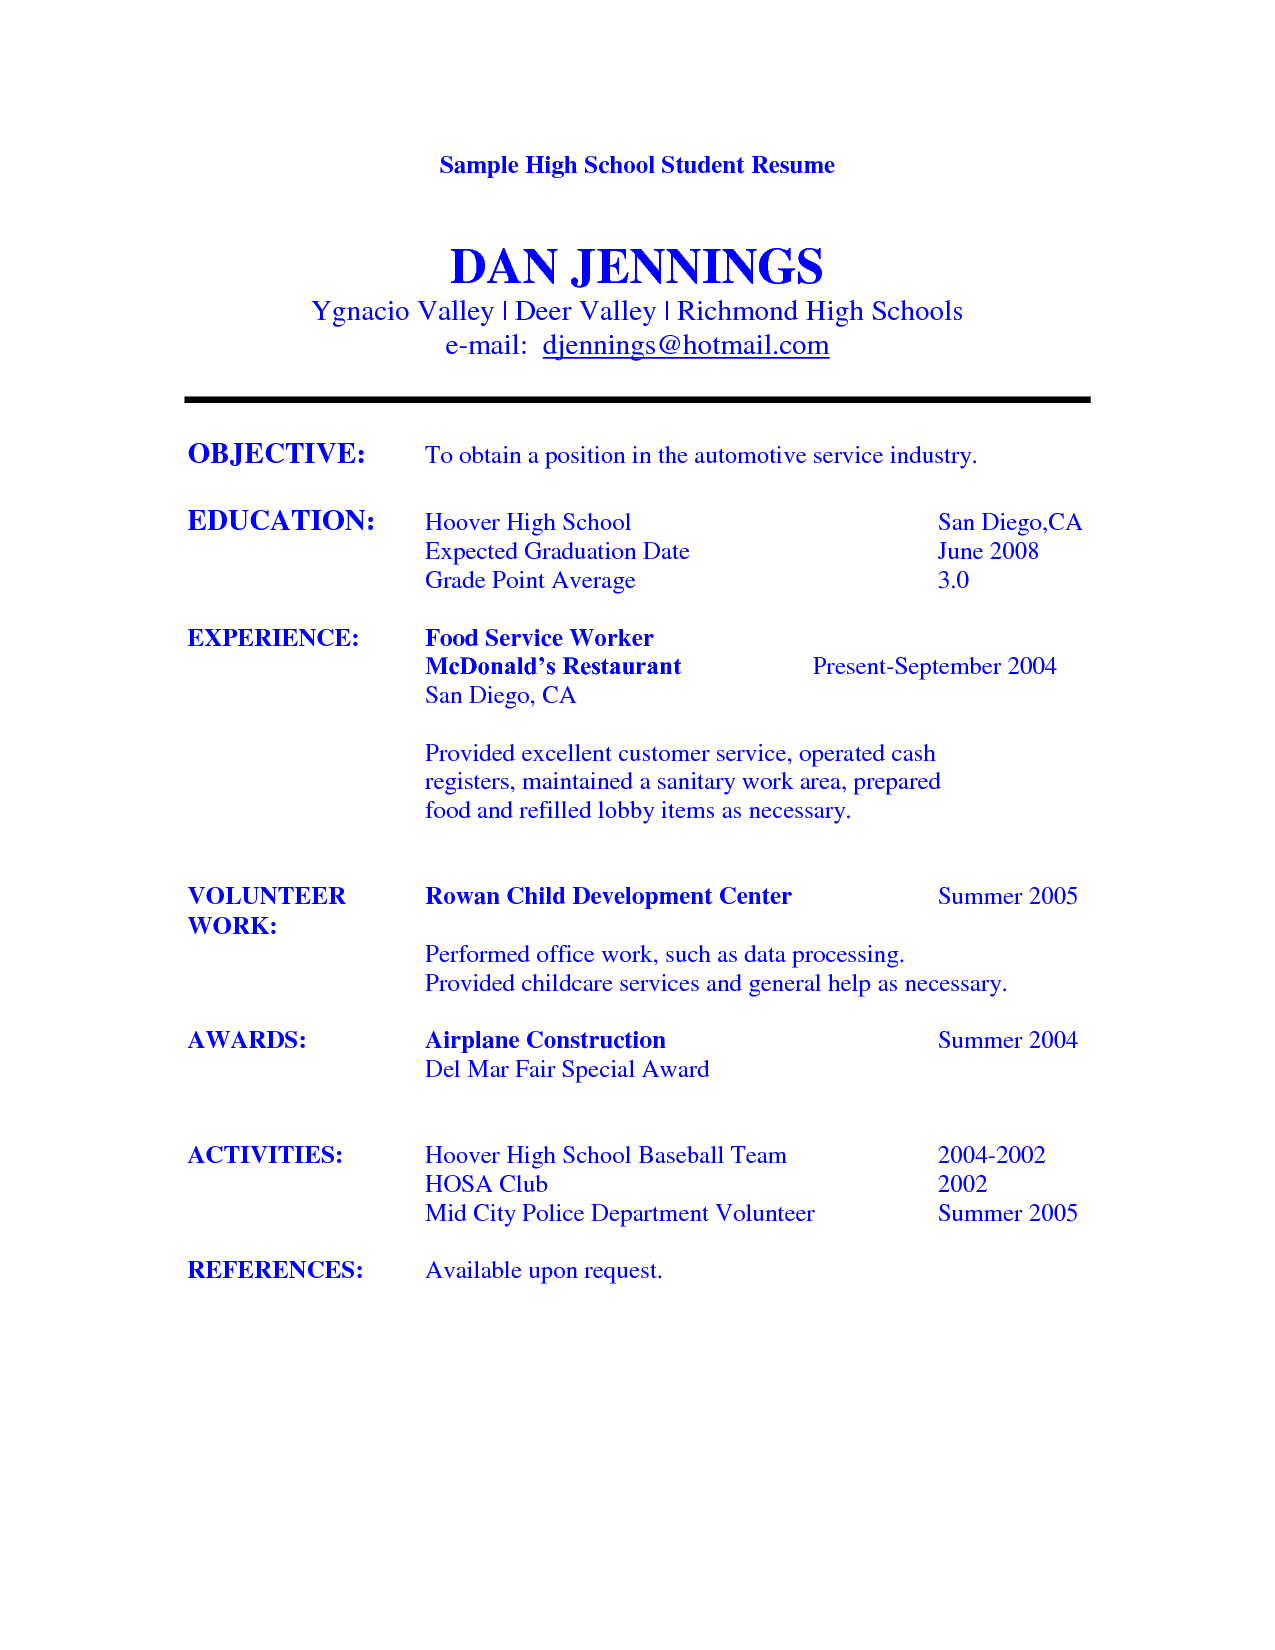 Free Student Resume Templates Simple Resume Example For High School Student Sample Resumes  Httpwww